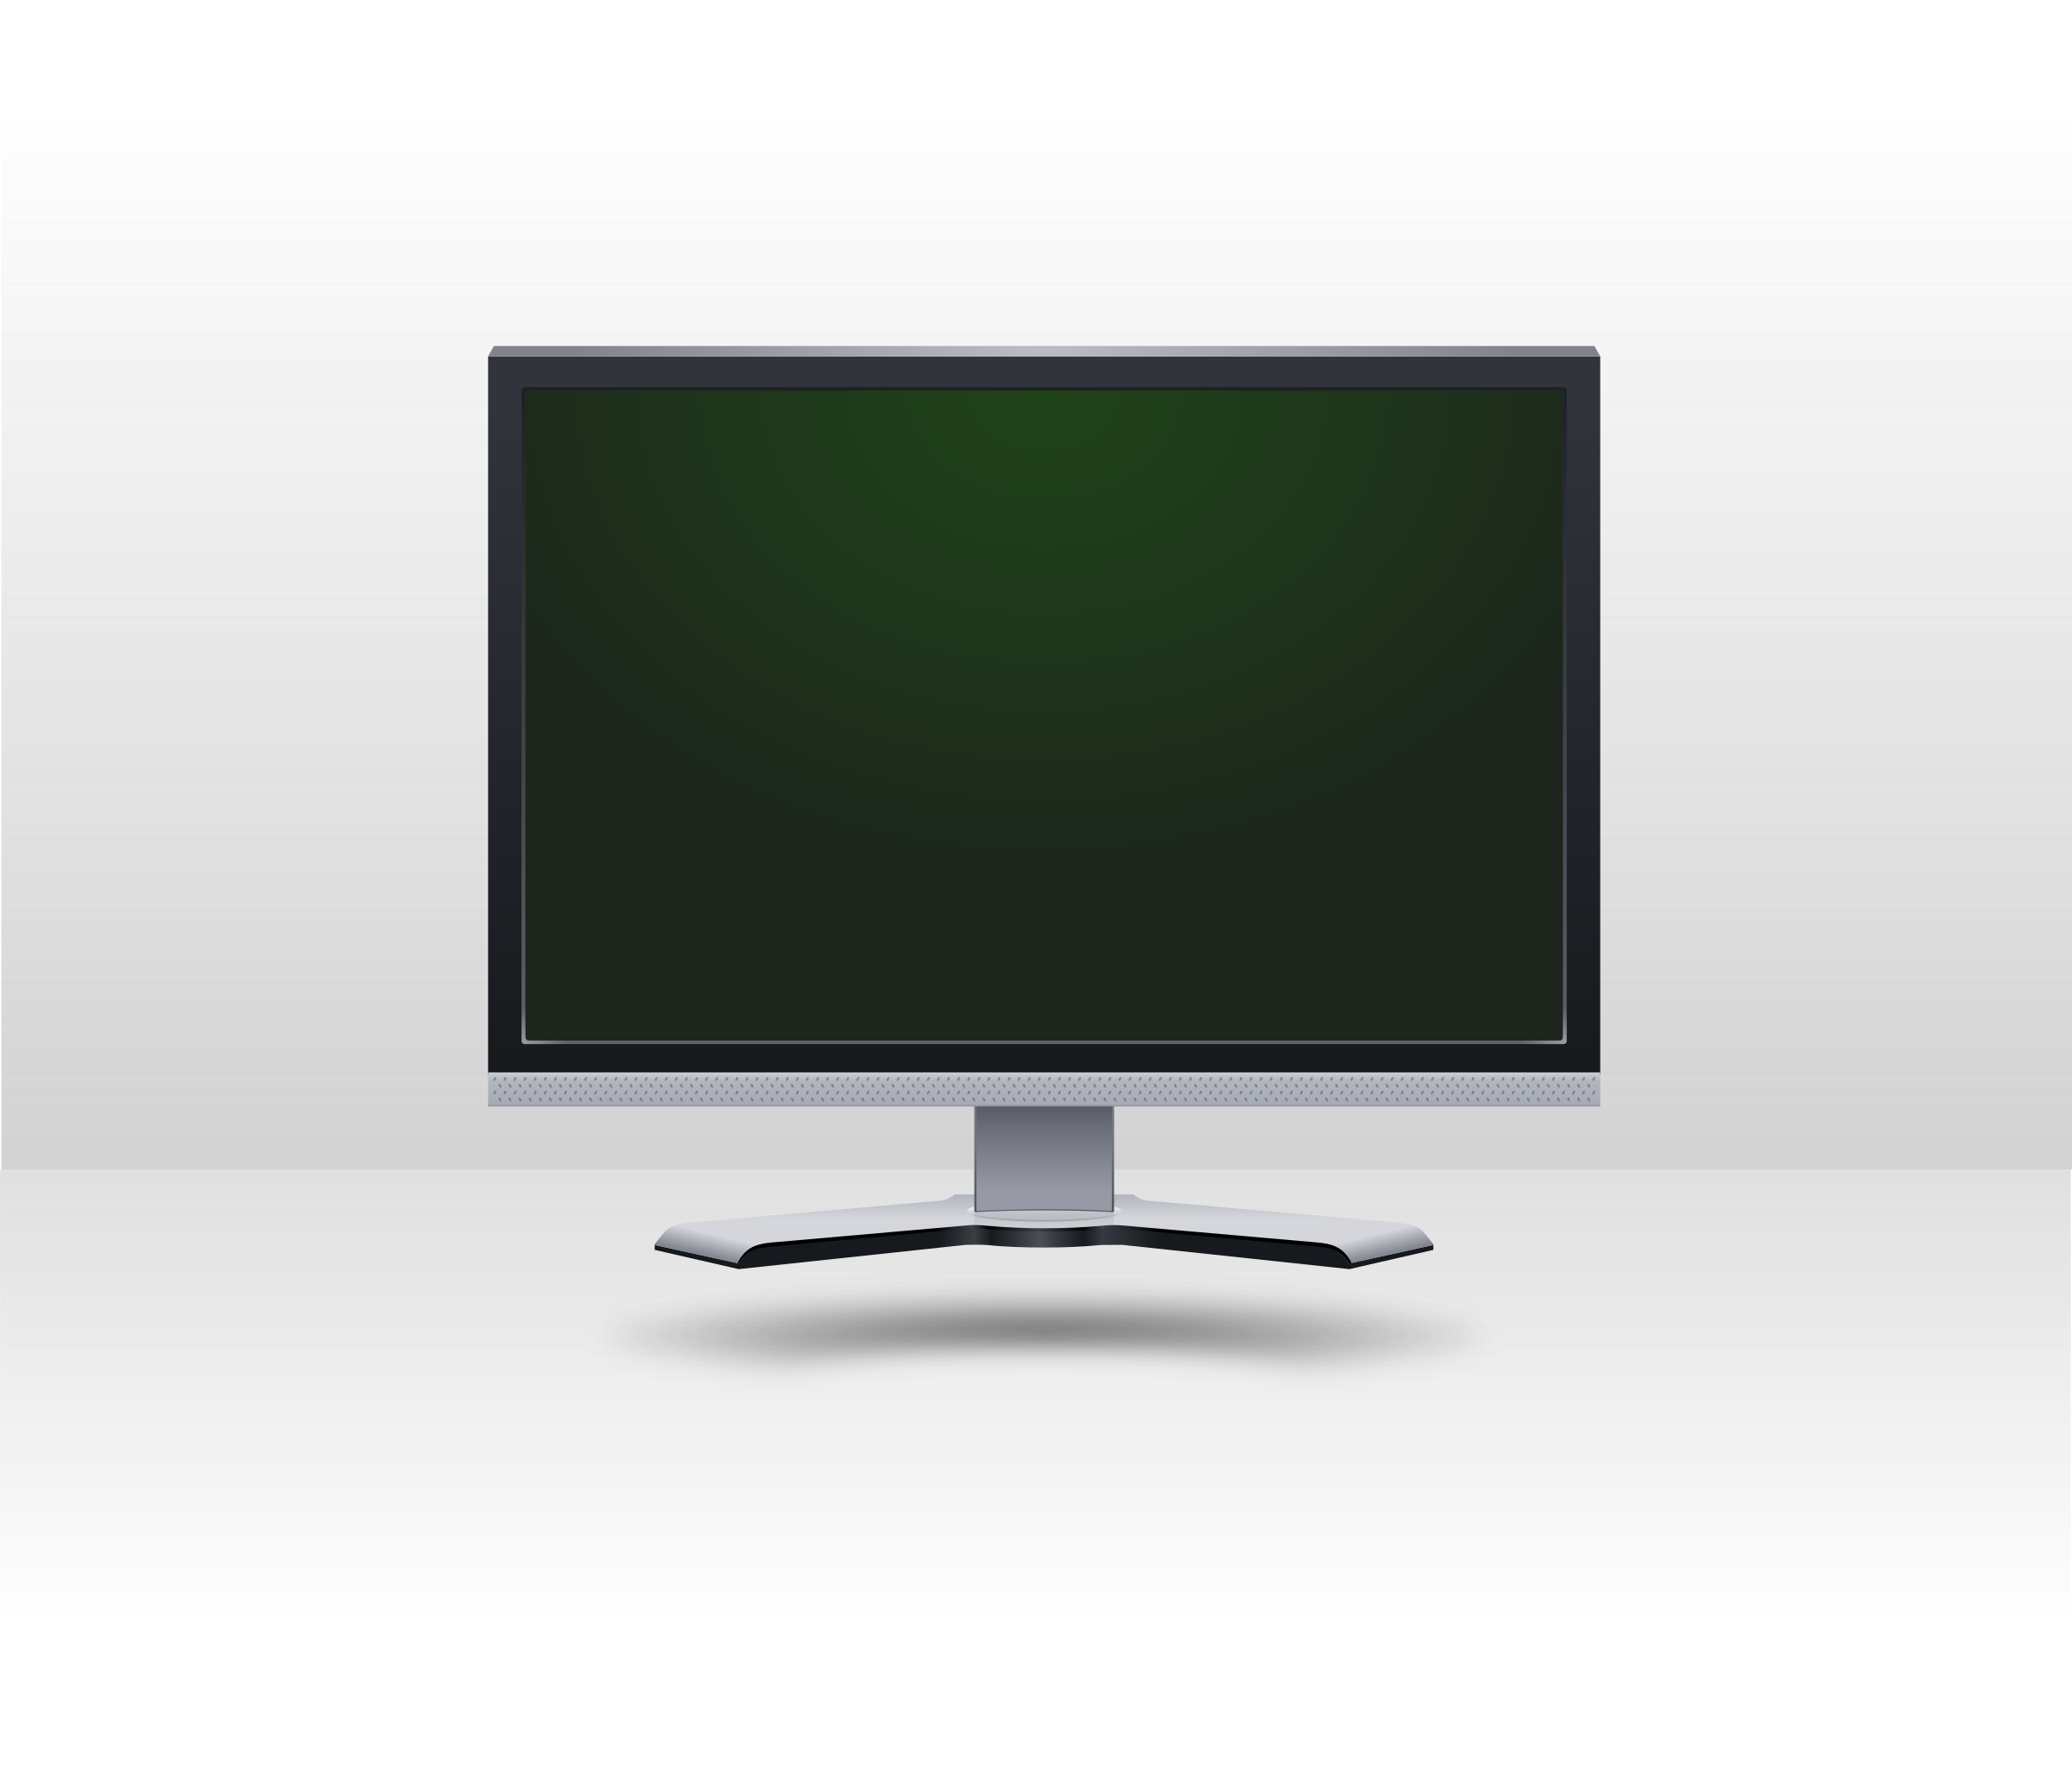 LCD screen by molumen